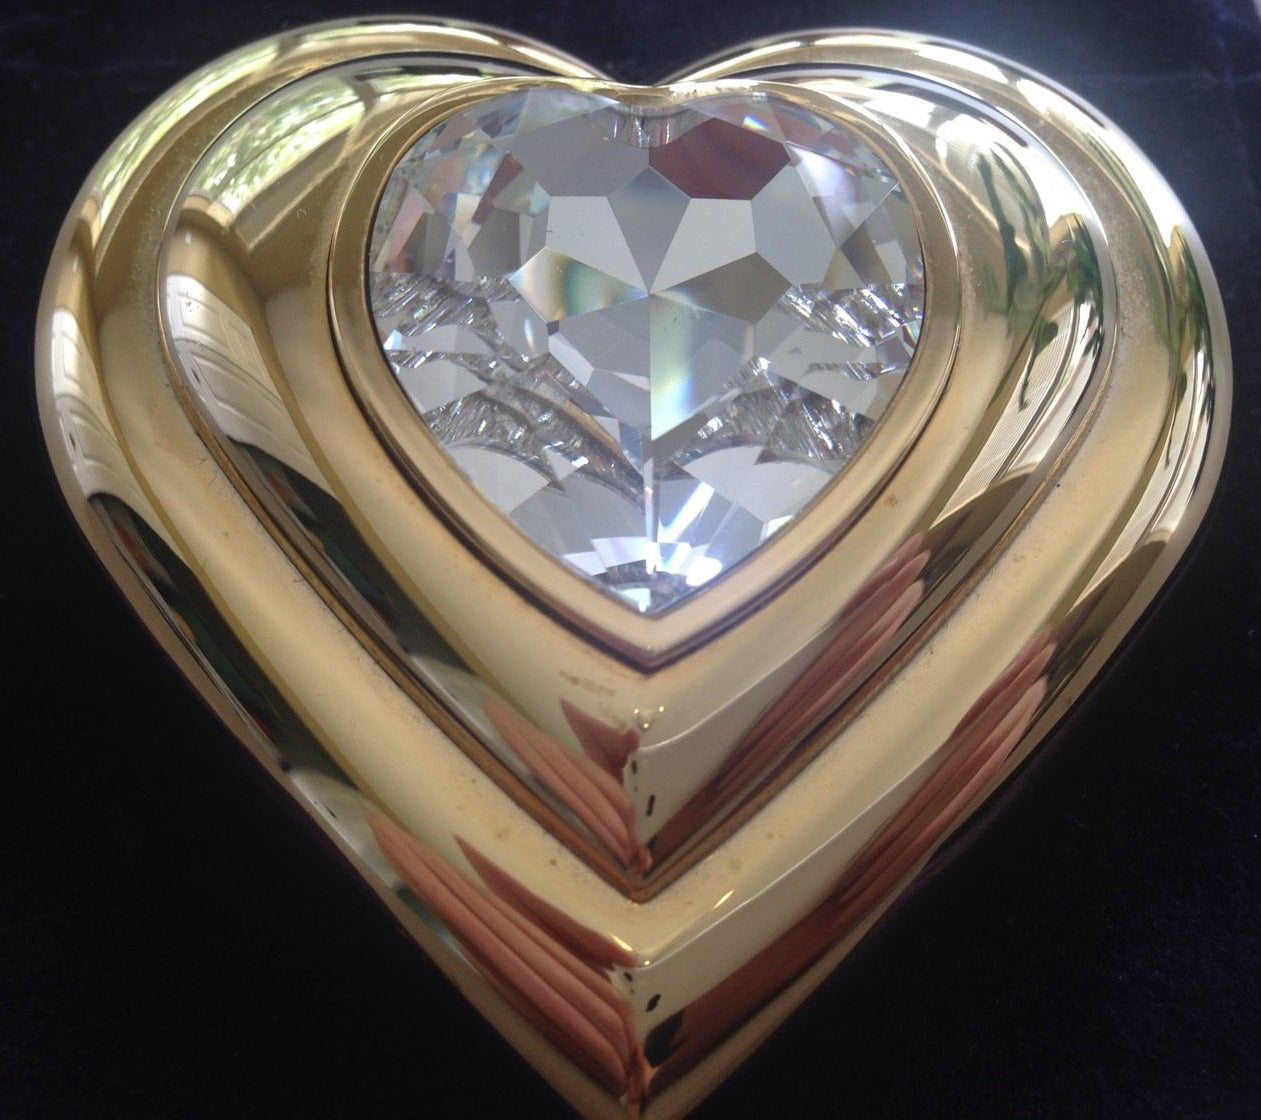 Yves Saint Laurent Paris Poudre Ecrin Crystal Heart Jeweled Compact  YSL 4